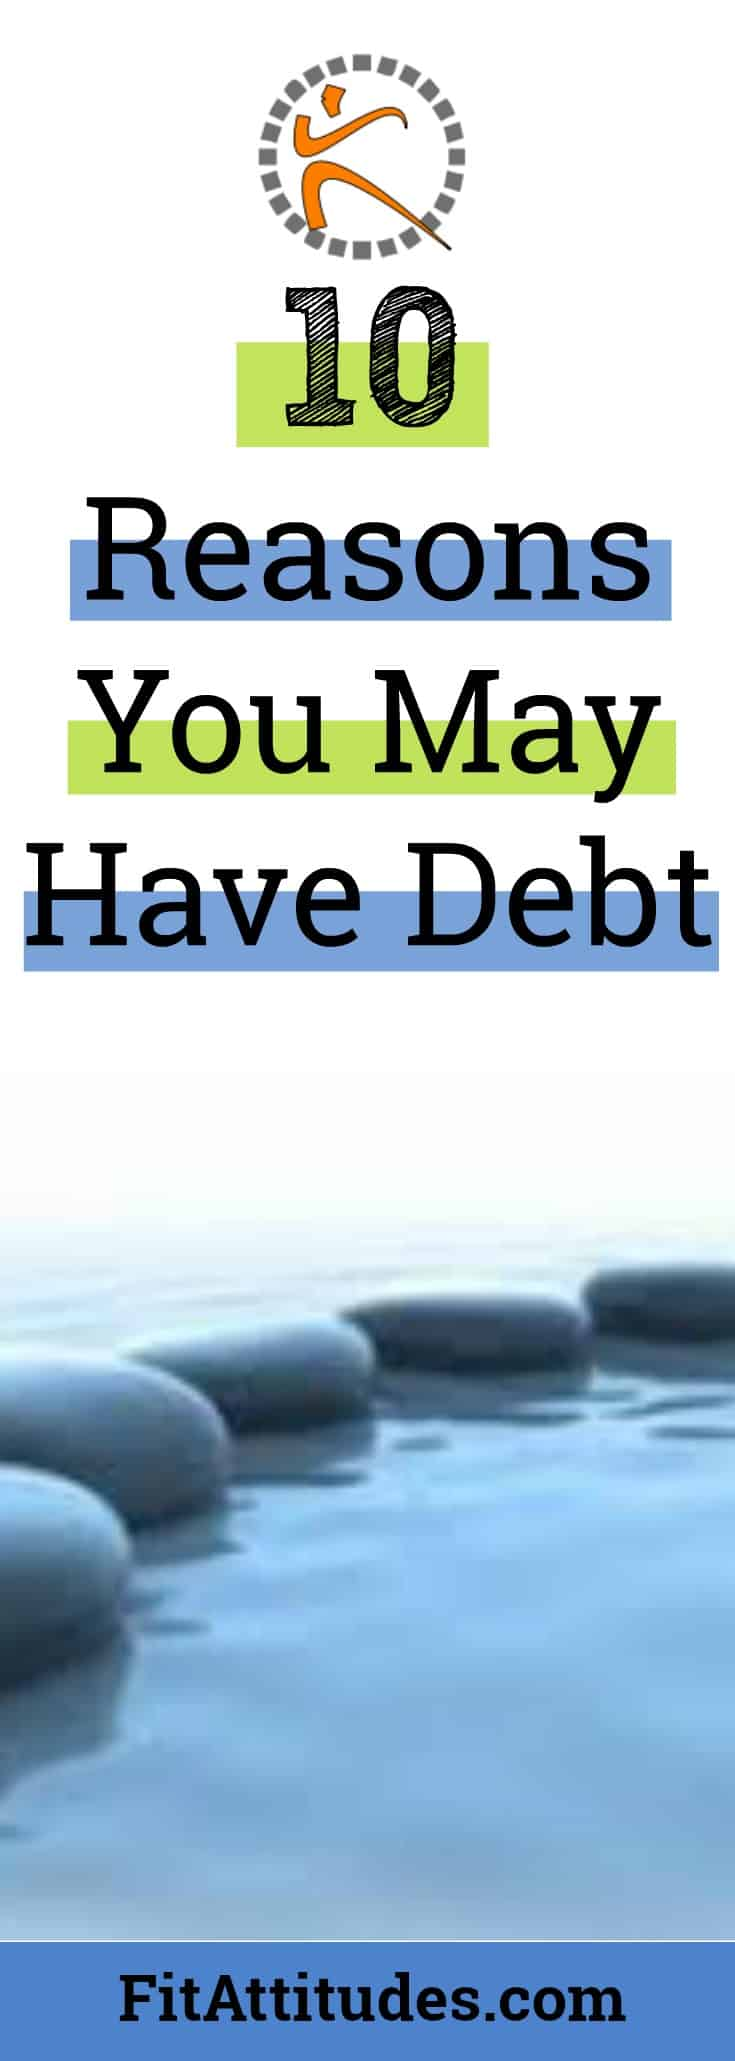 Common Reasons for Debt